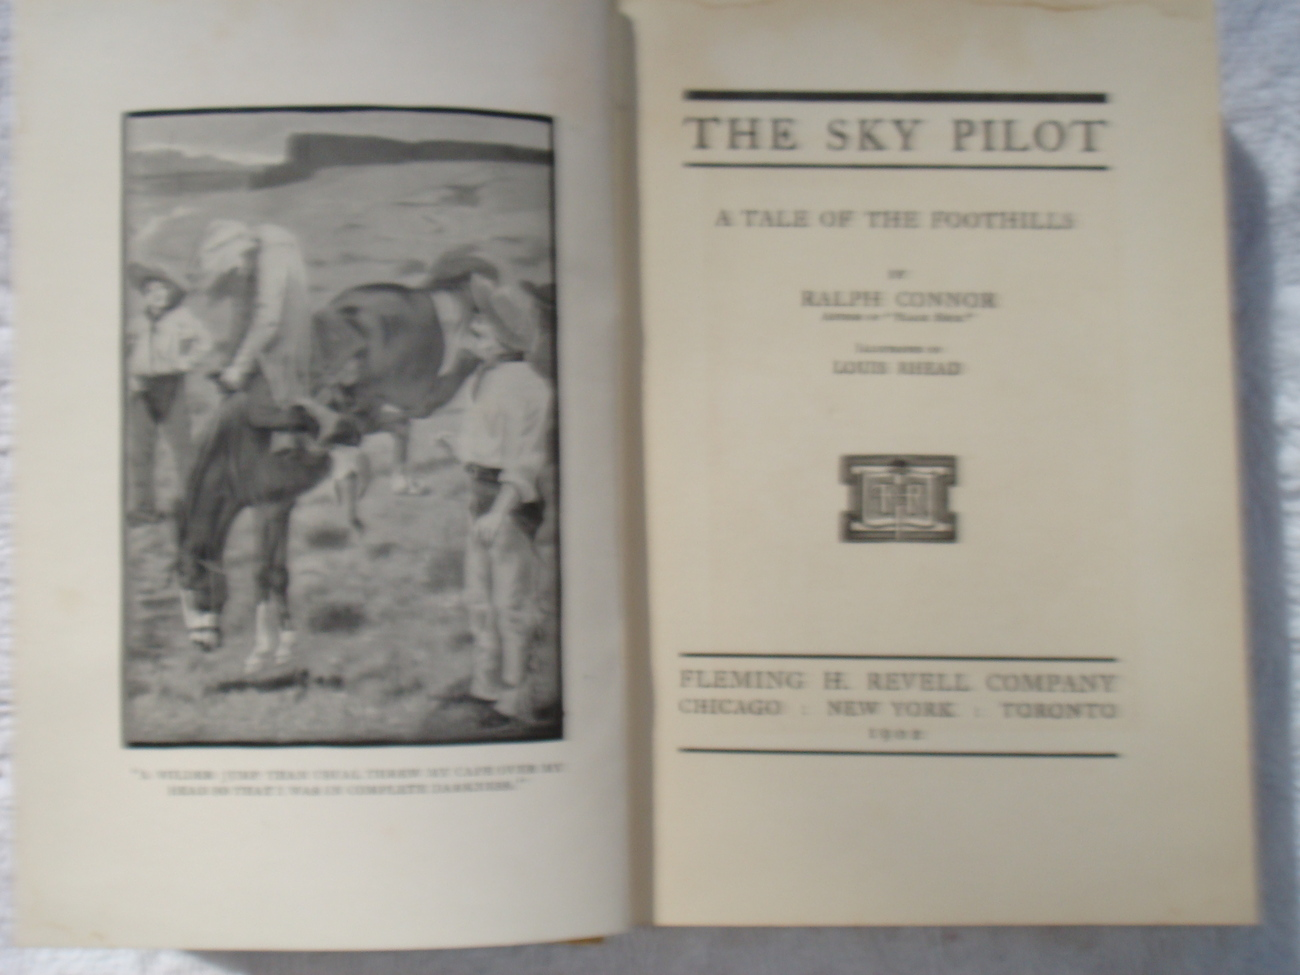 The Sky Pilot: A Tale of the Foothills by Ralph Connor